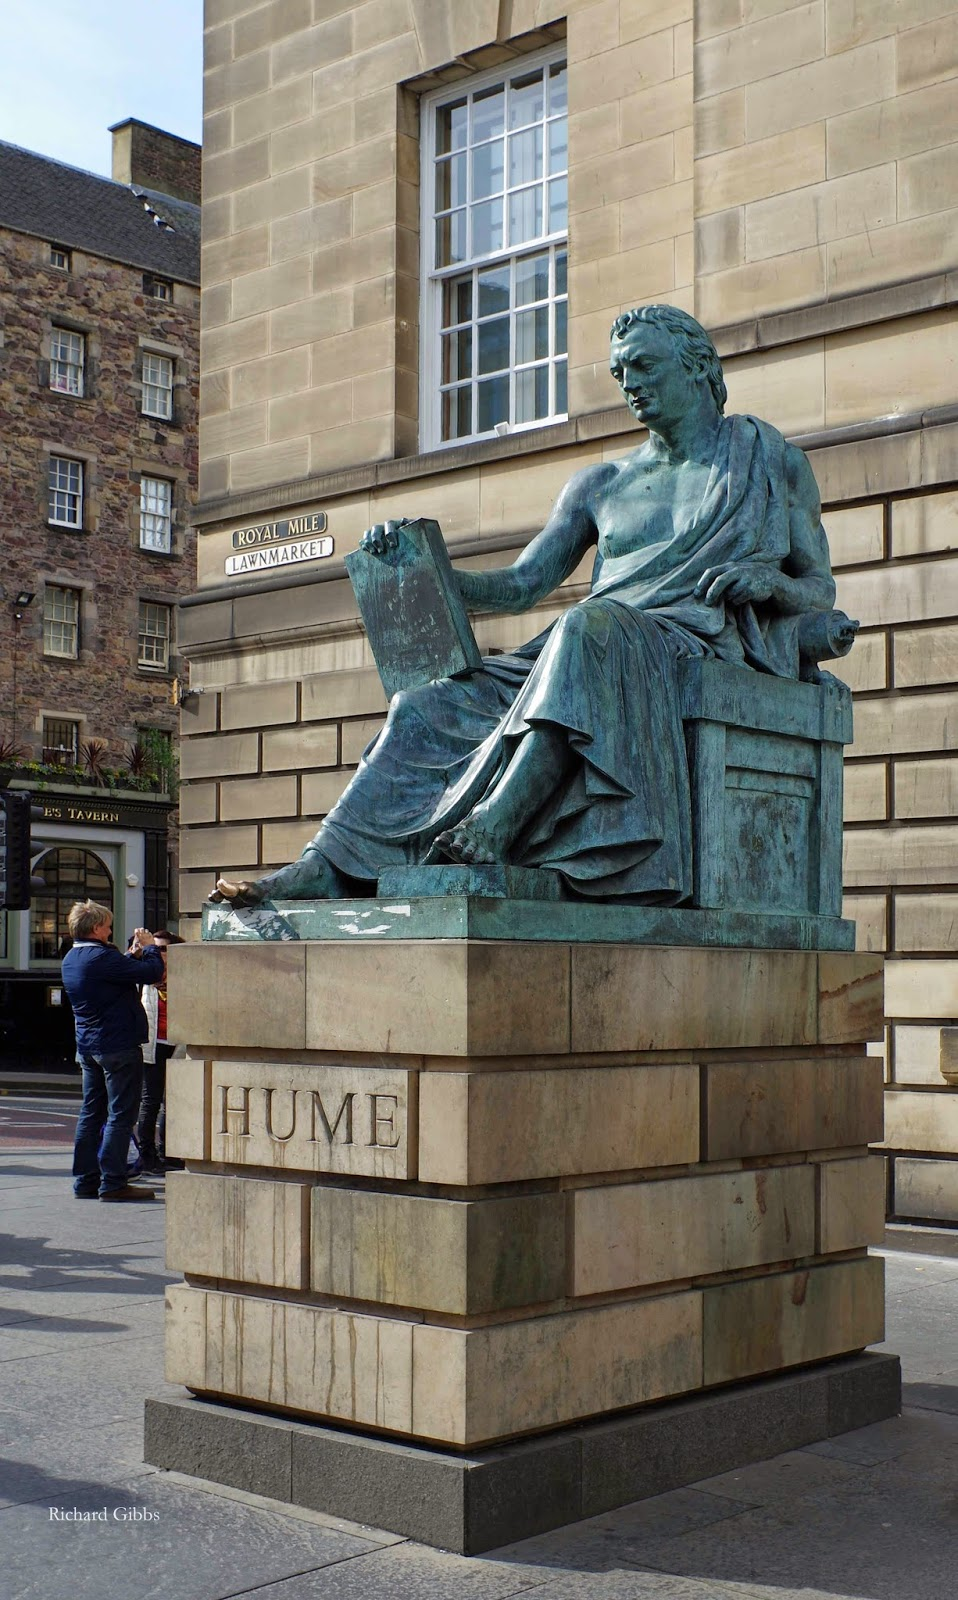 david hume essays society for philosophy culture publications  essays and diversions edinburgh david hume lawnmarket